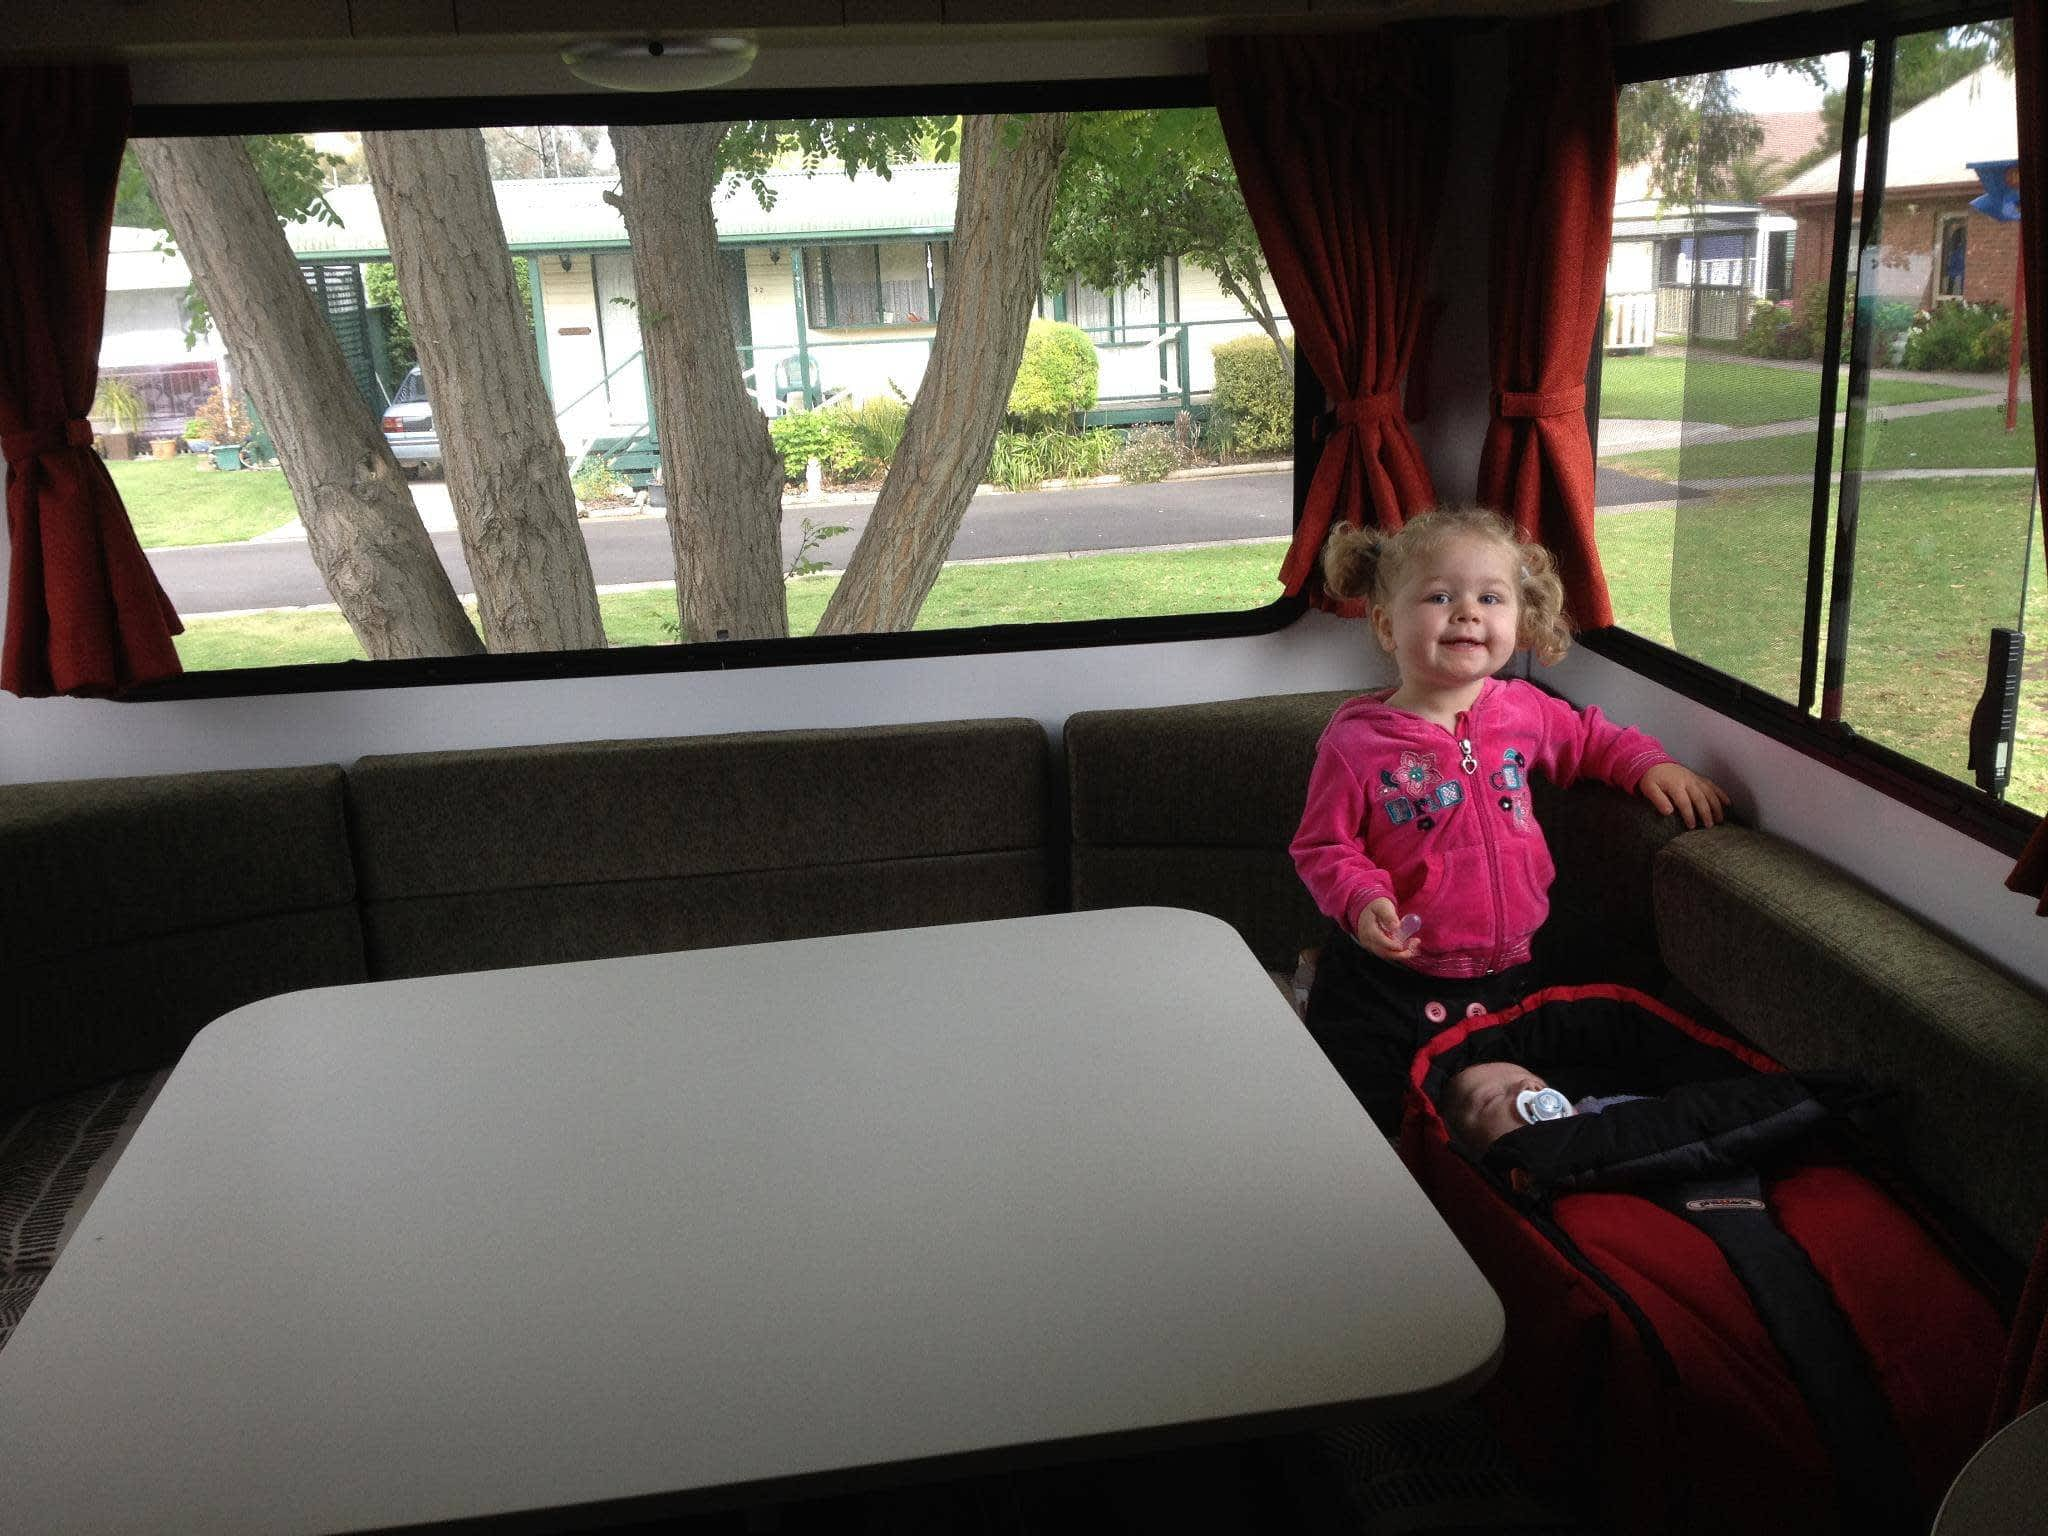 Kid in a Motorhome